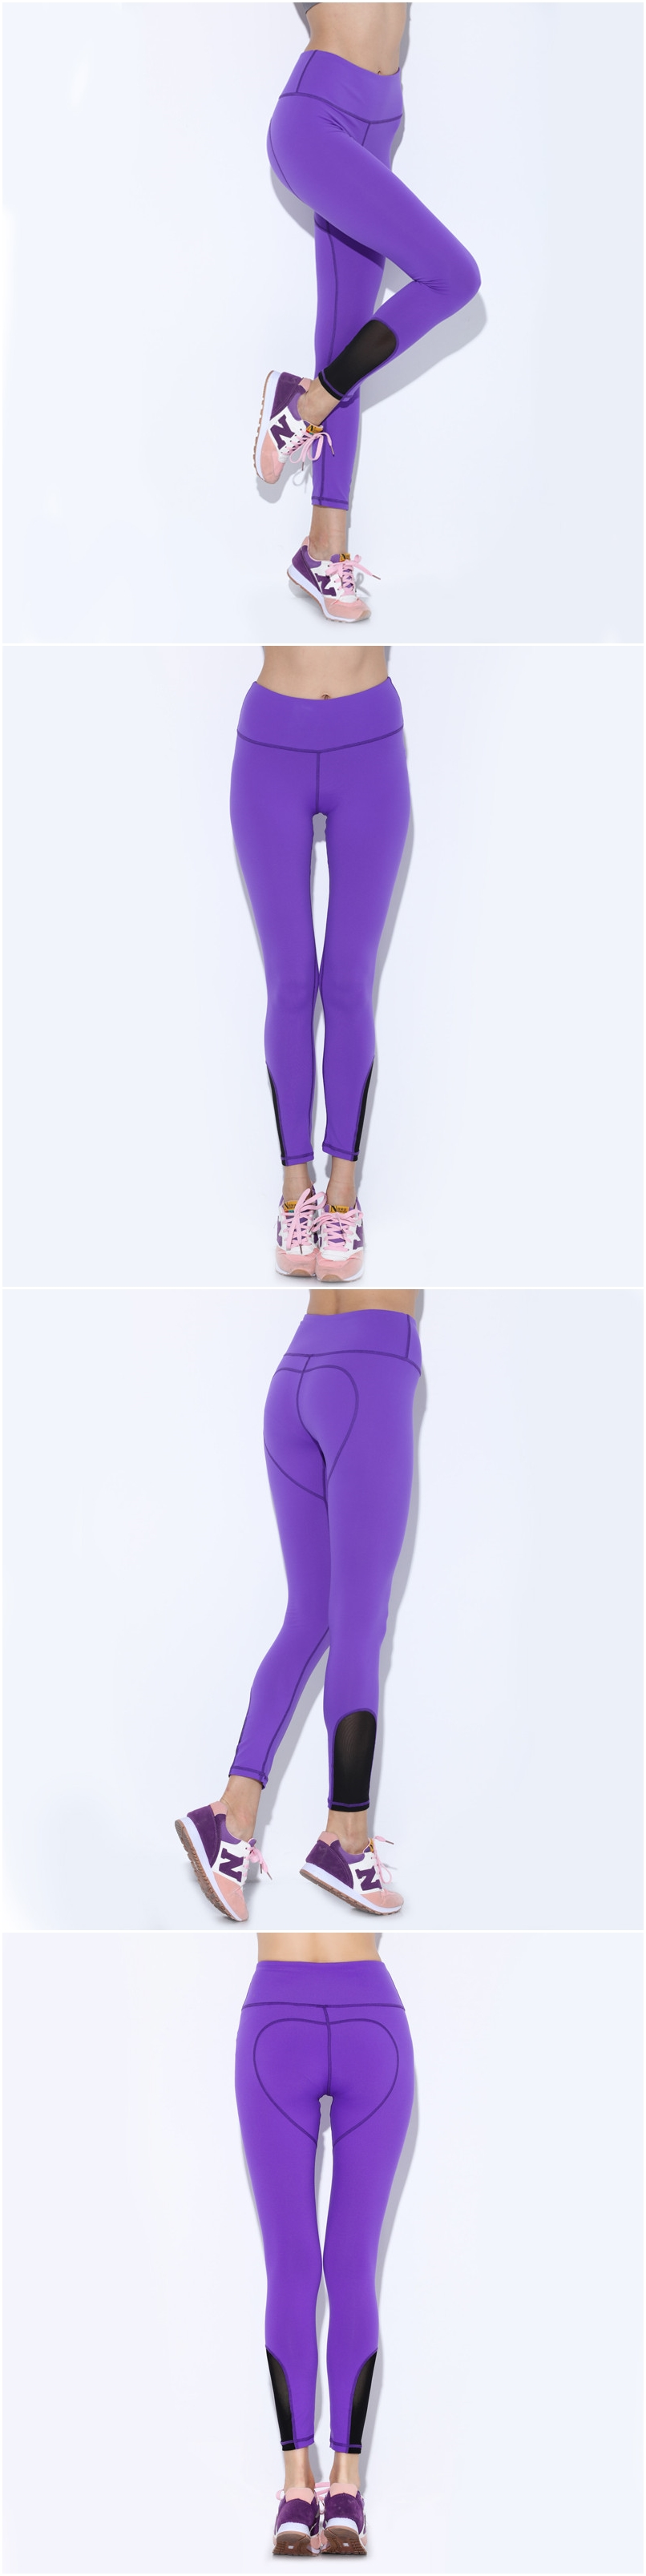 High Waist Women Heart Sport Legging Breathable Quick Dry Elastic Fitness Running Pants